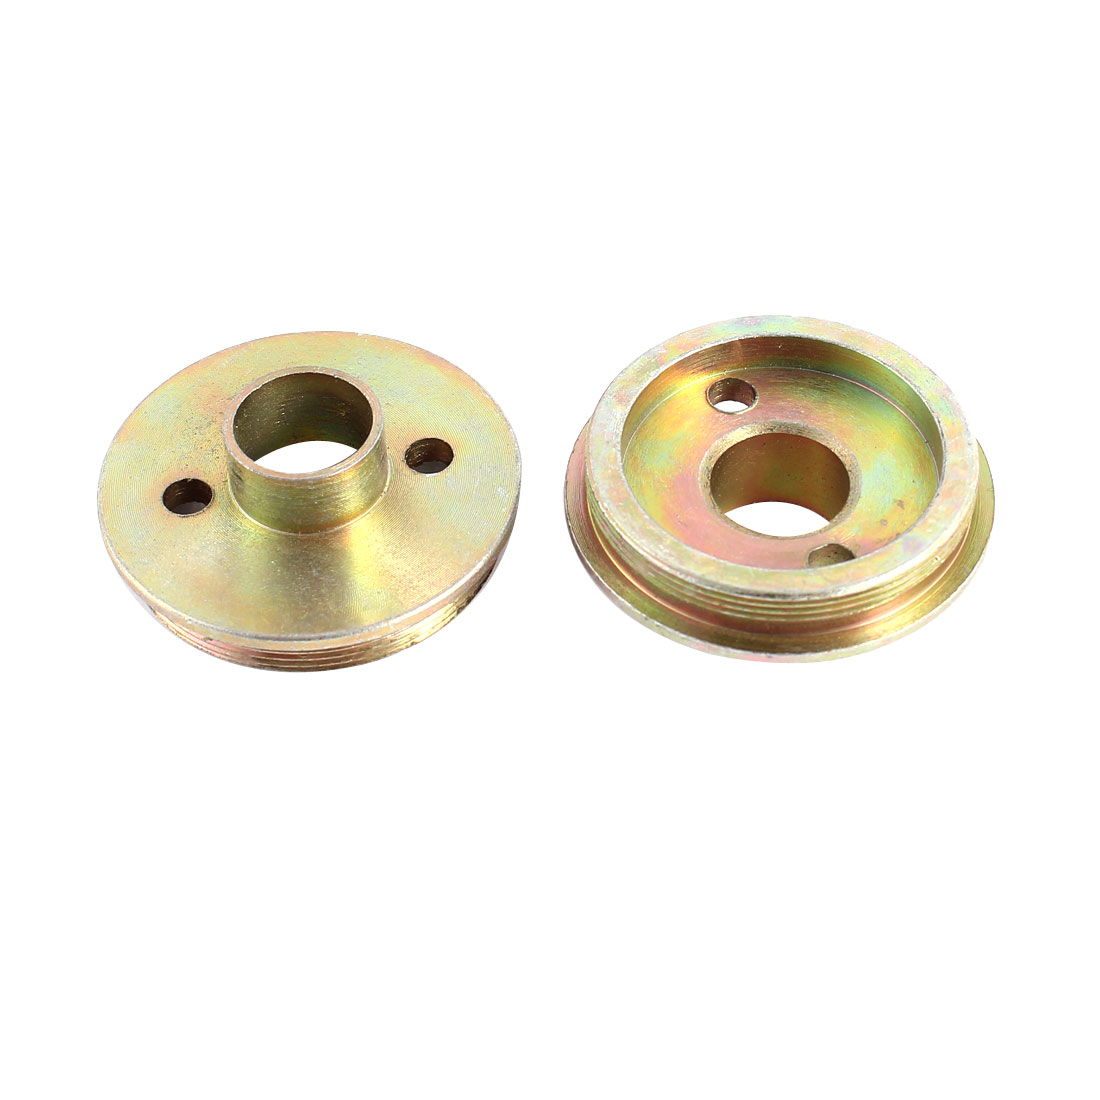 2Pcs 40mm Dia Metal Guide Bushes for Makita 3600H Router